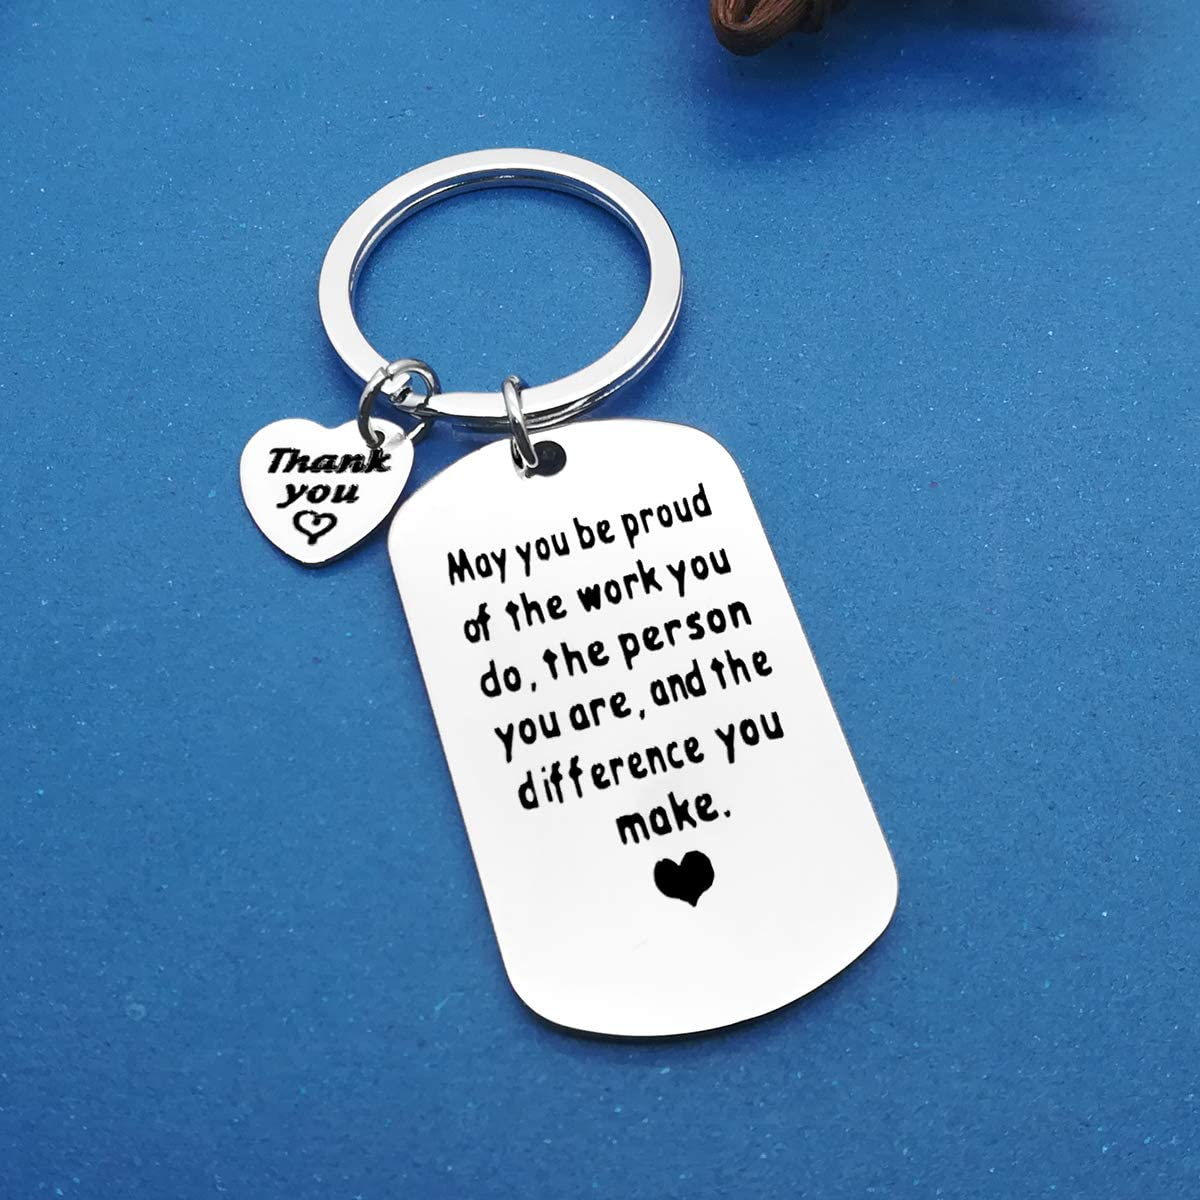 Thank You Gift Keyring Appreciation Jewelry Make A Difference Keychain Gift for Volunteer Appreciation,Coach Mentor Gift,Employee Gift,Social Worker Jewelry Gift Stainless Steel Keyring